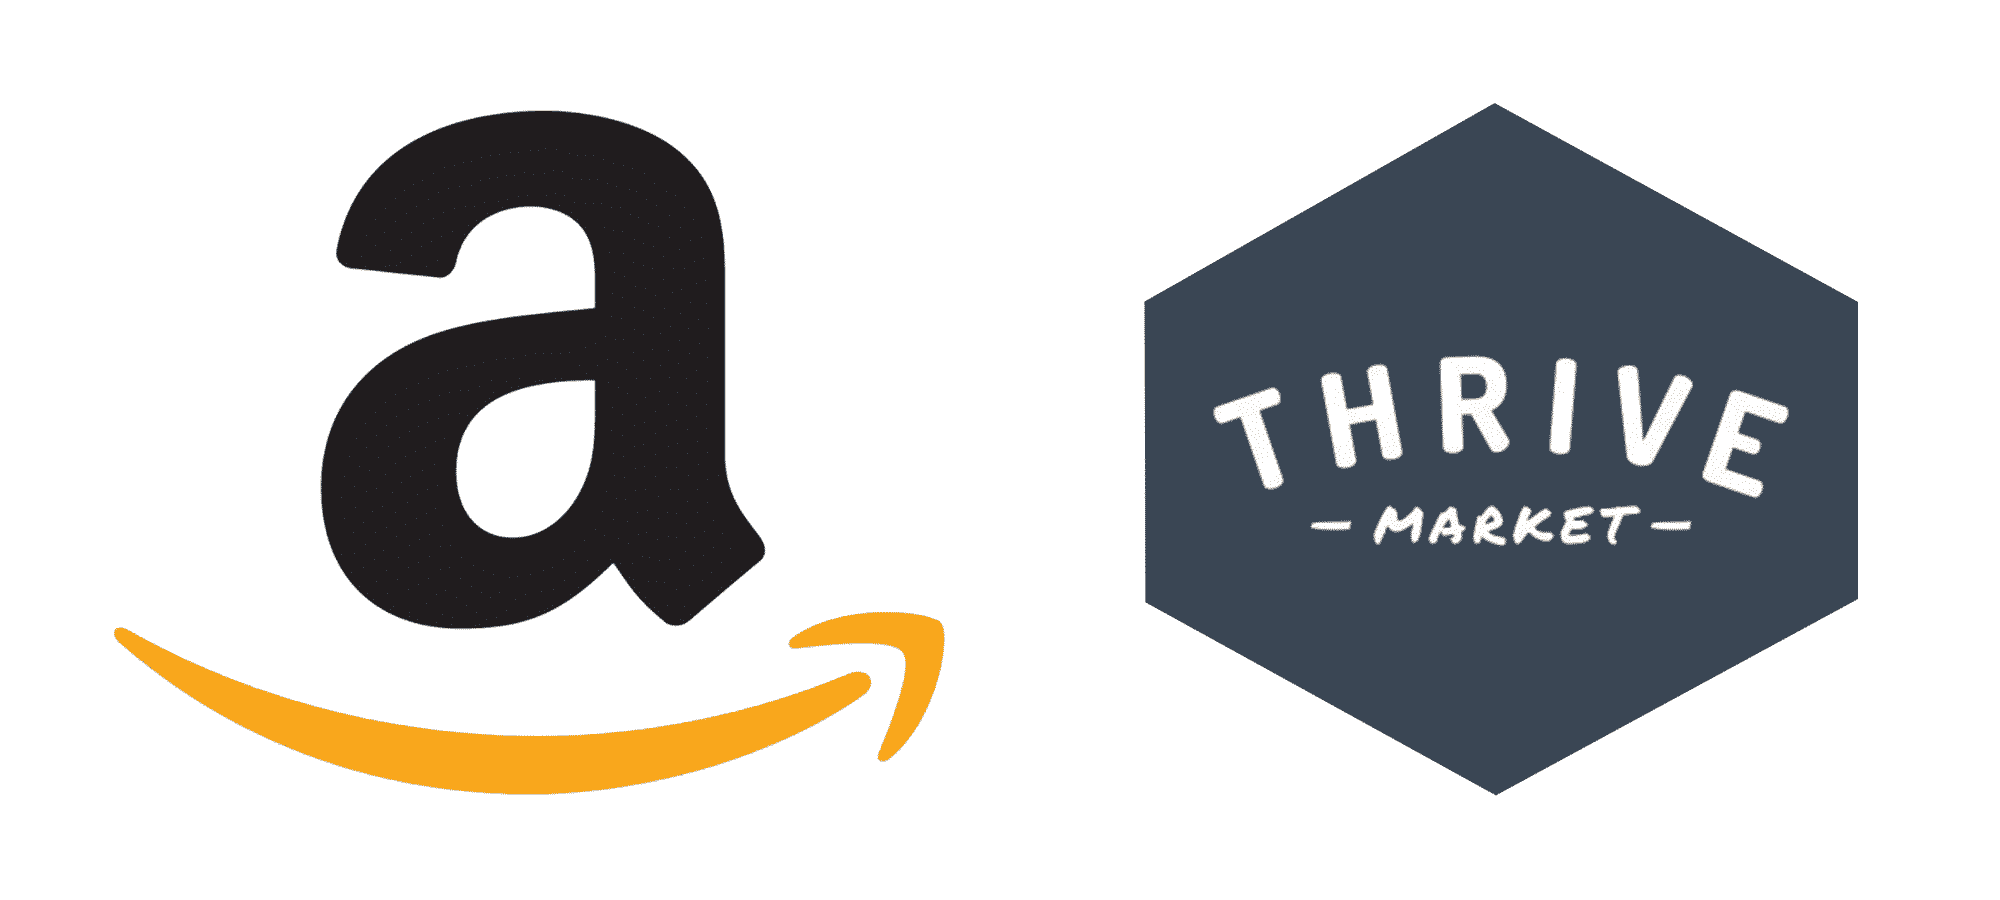 Amazon and Thrive logos